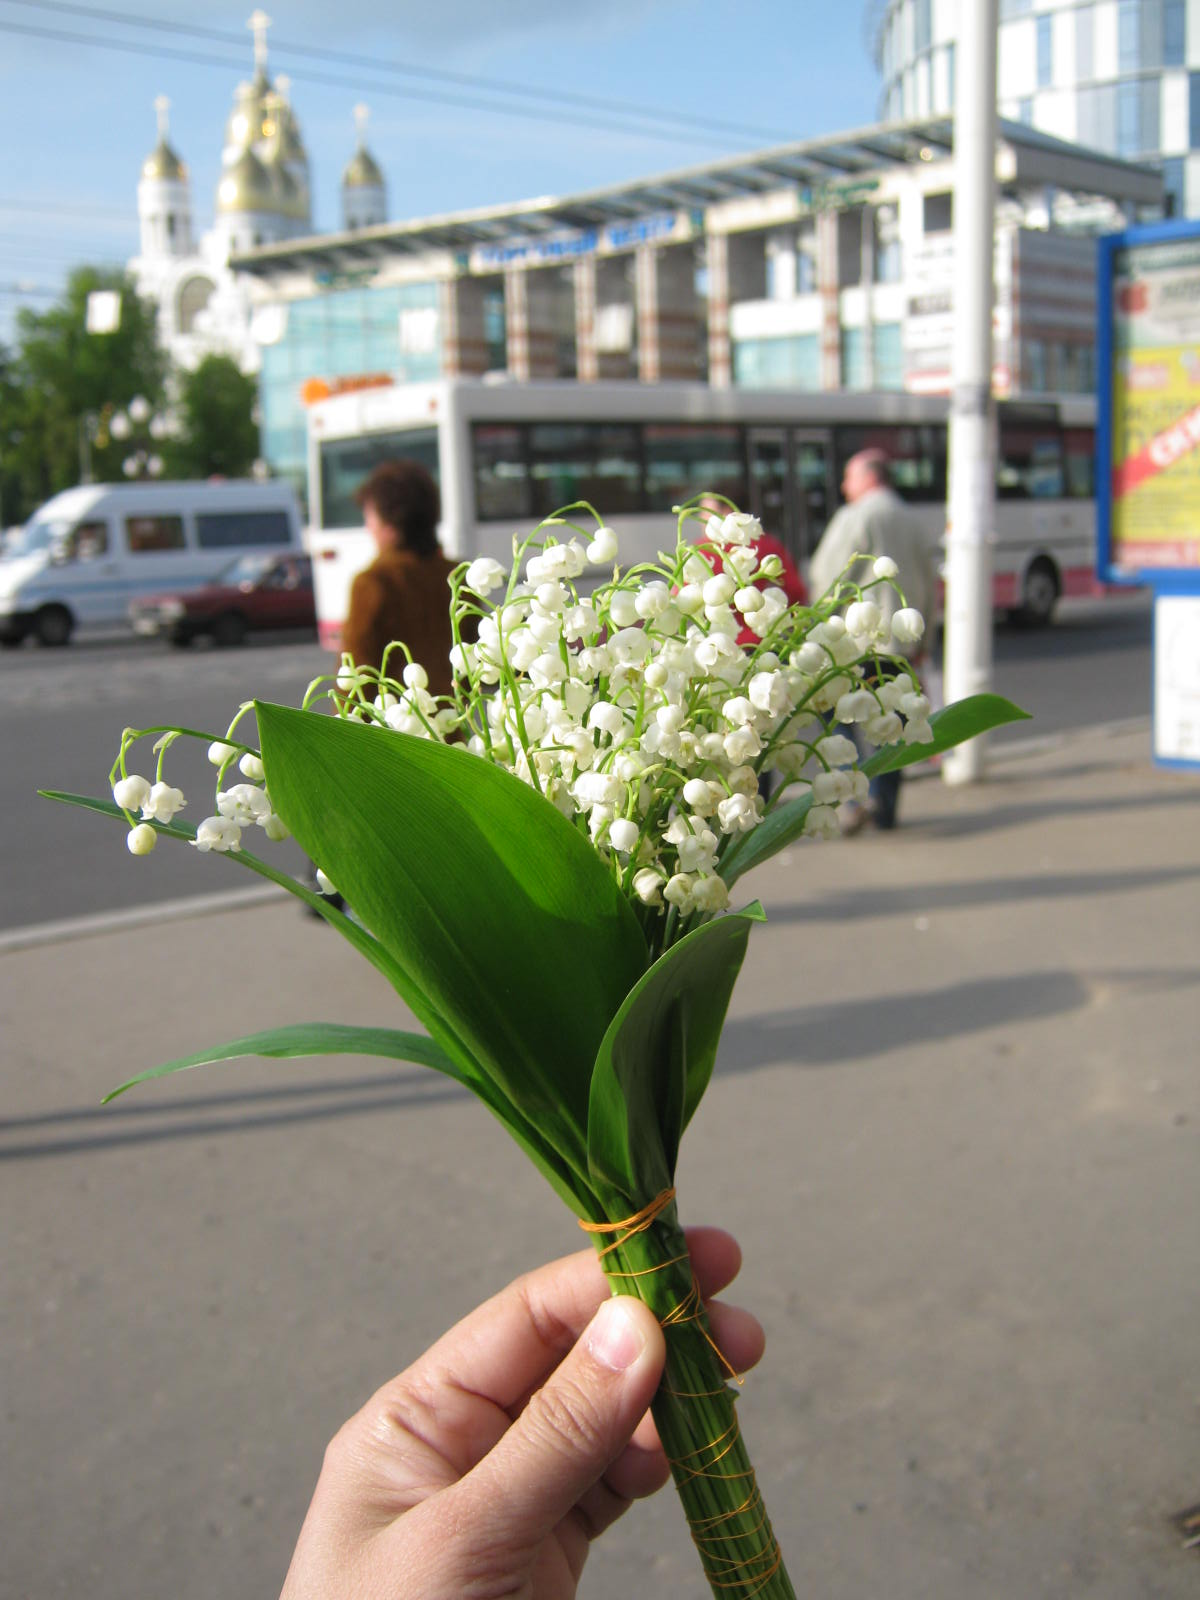 living in russia lily of the valley return of street peddlars or more accurately old people or pensioneers sell them in little bouquet like this it is delicately soaked in water before the frangrance izmirmasajfo